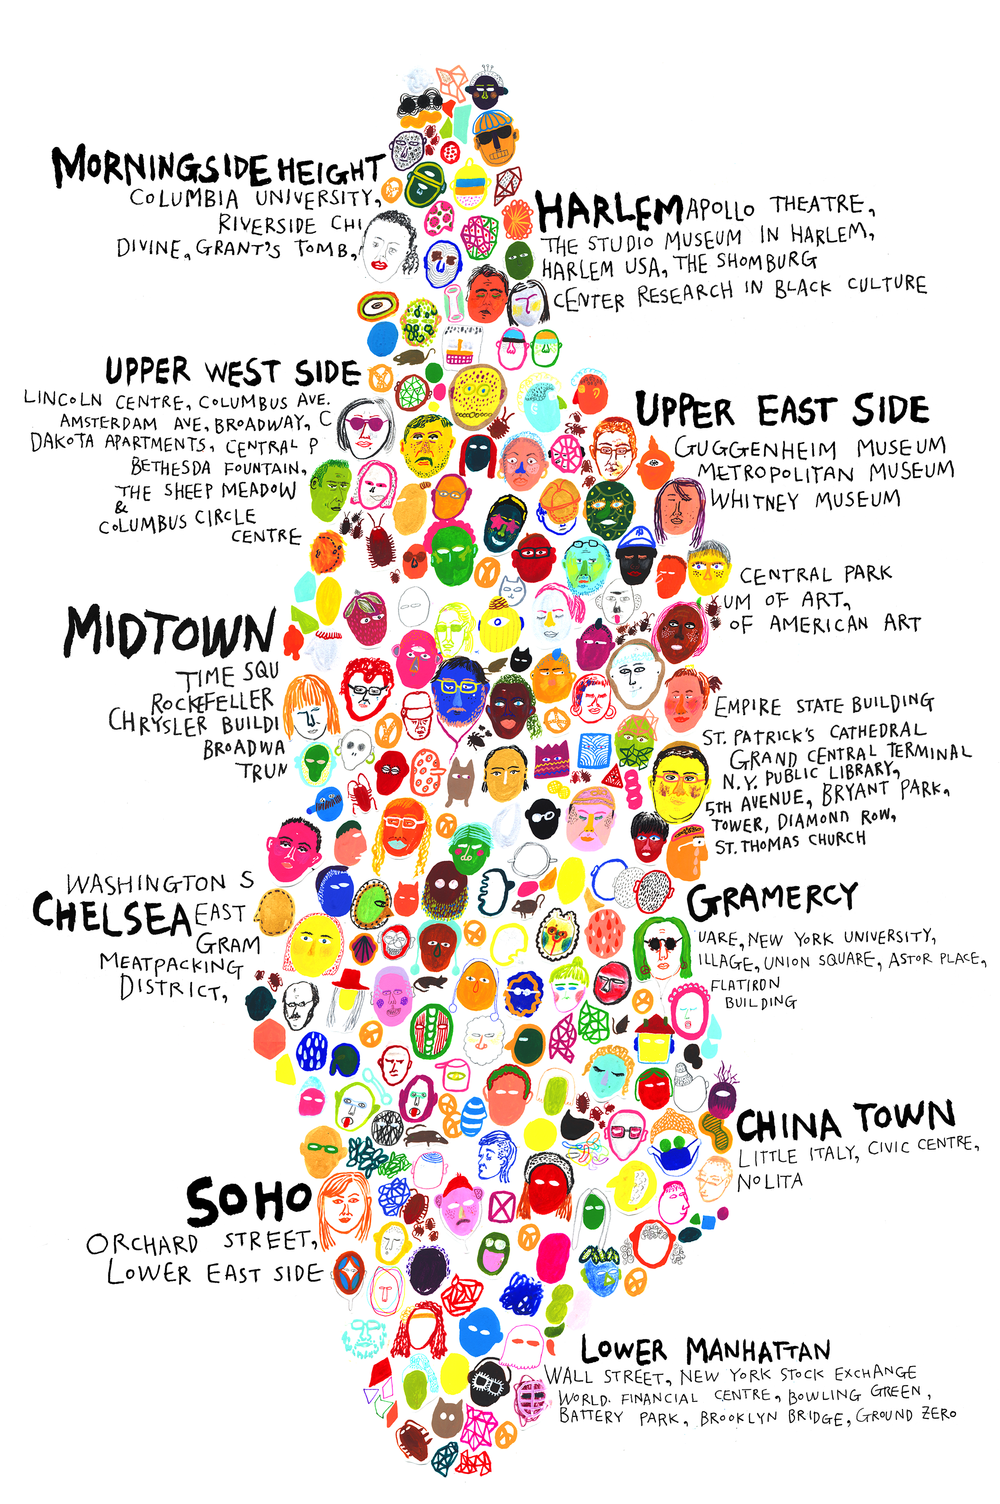 MANHATTAN MAP HYESU LEE